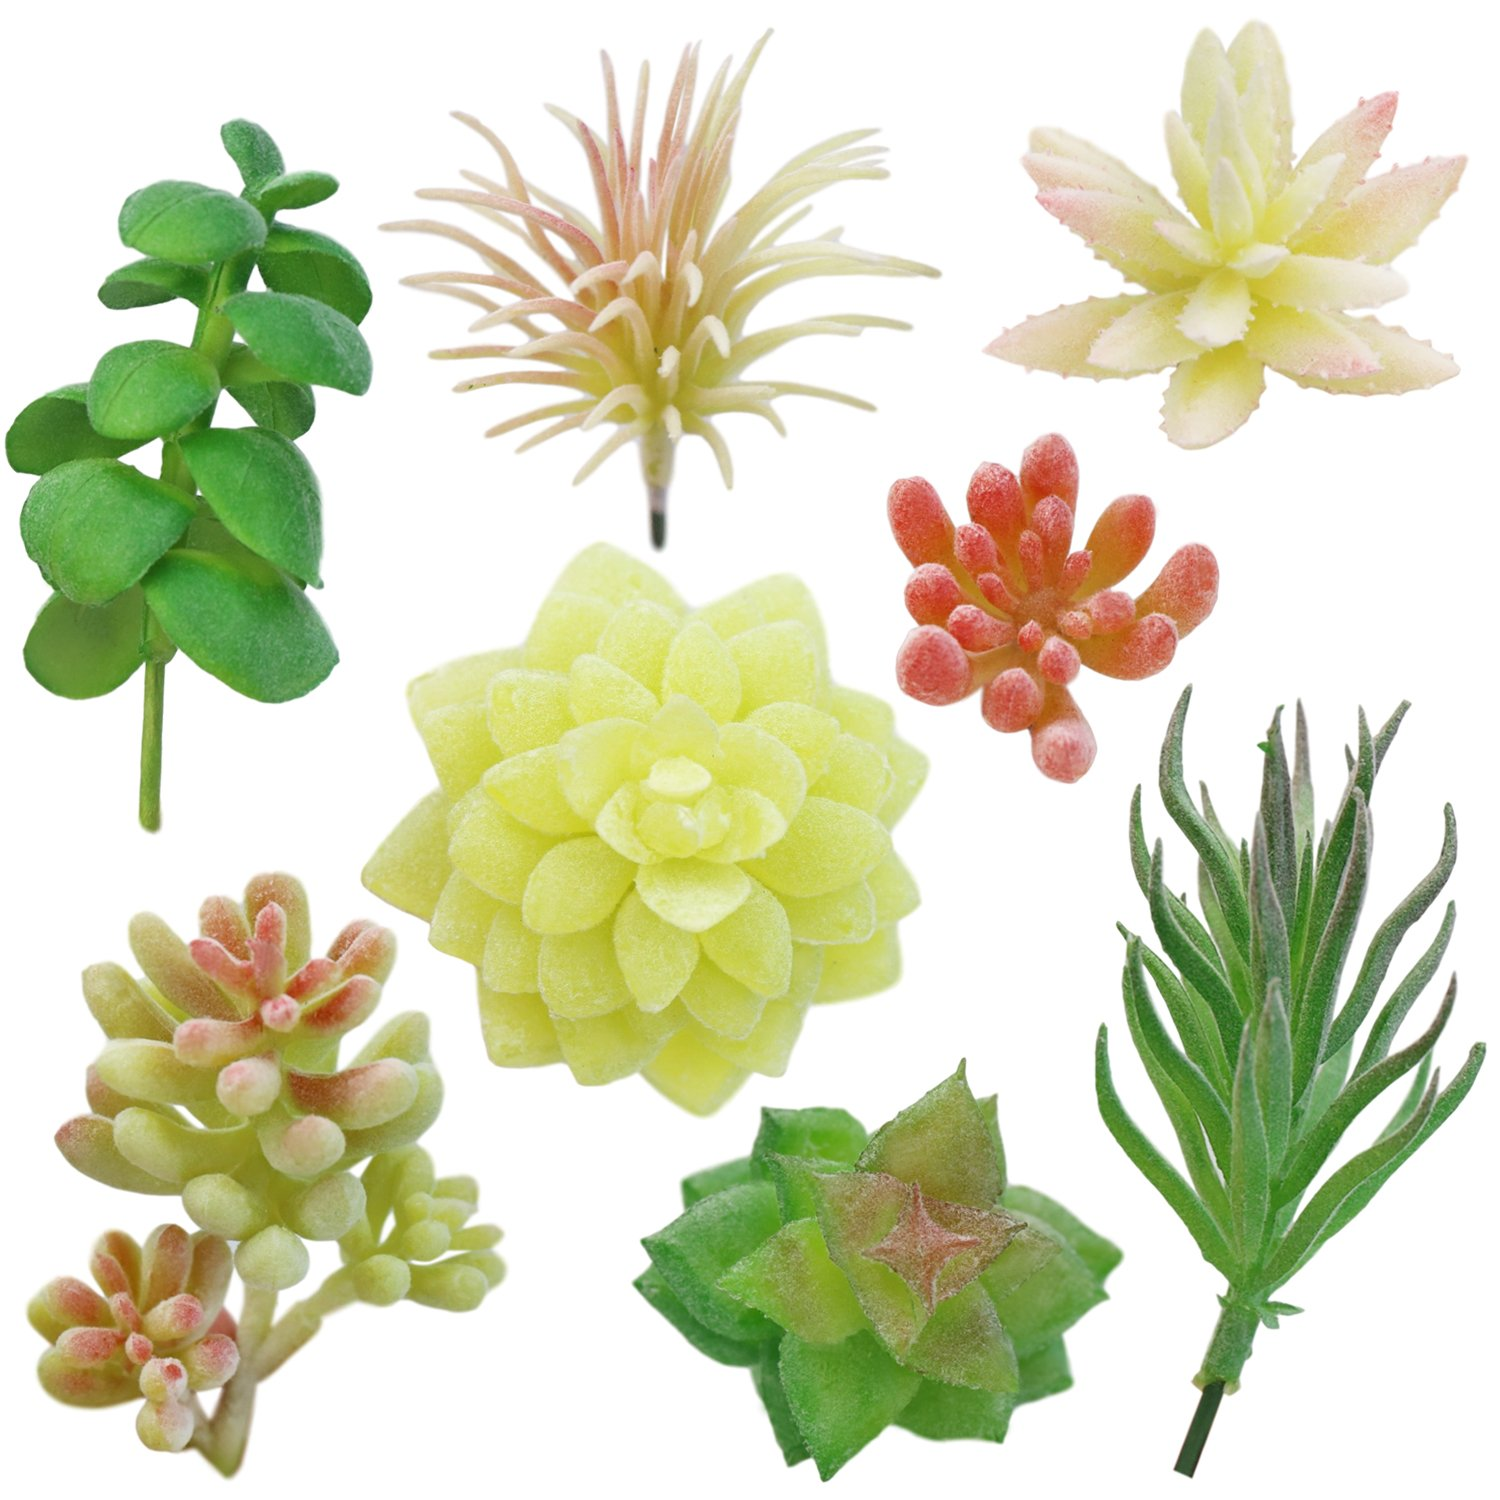 Amazon.com: N&T NIETING Mini Assorted Artificial Succulents Plants ...